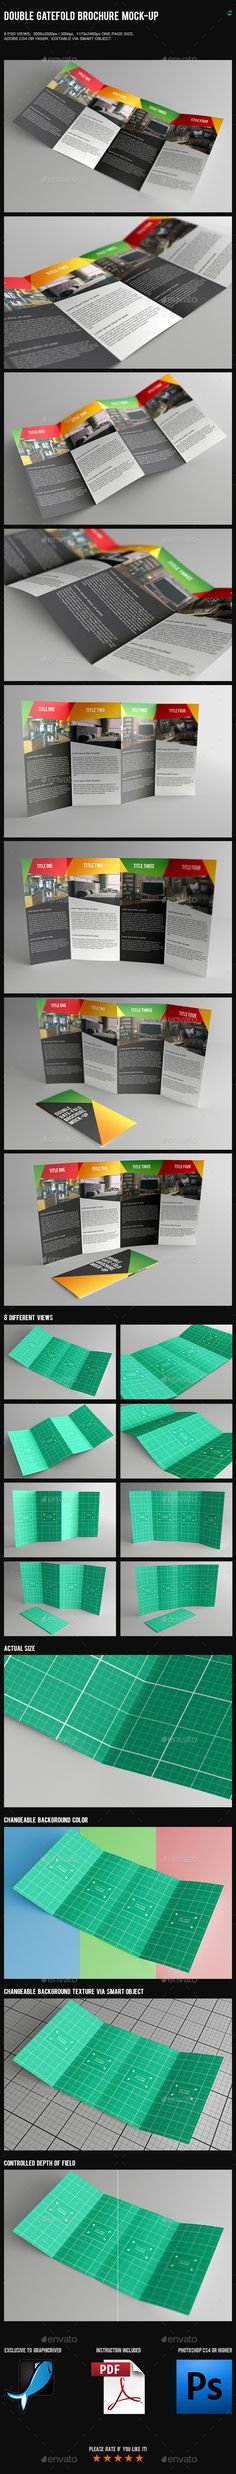 Double Gatefold Brochure MockUp   Brochures Mockup And Design